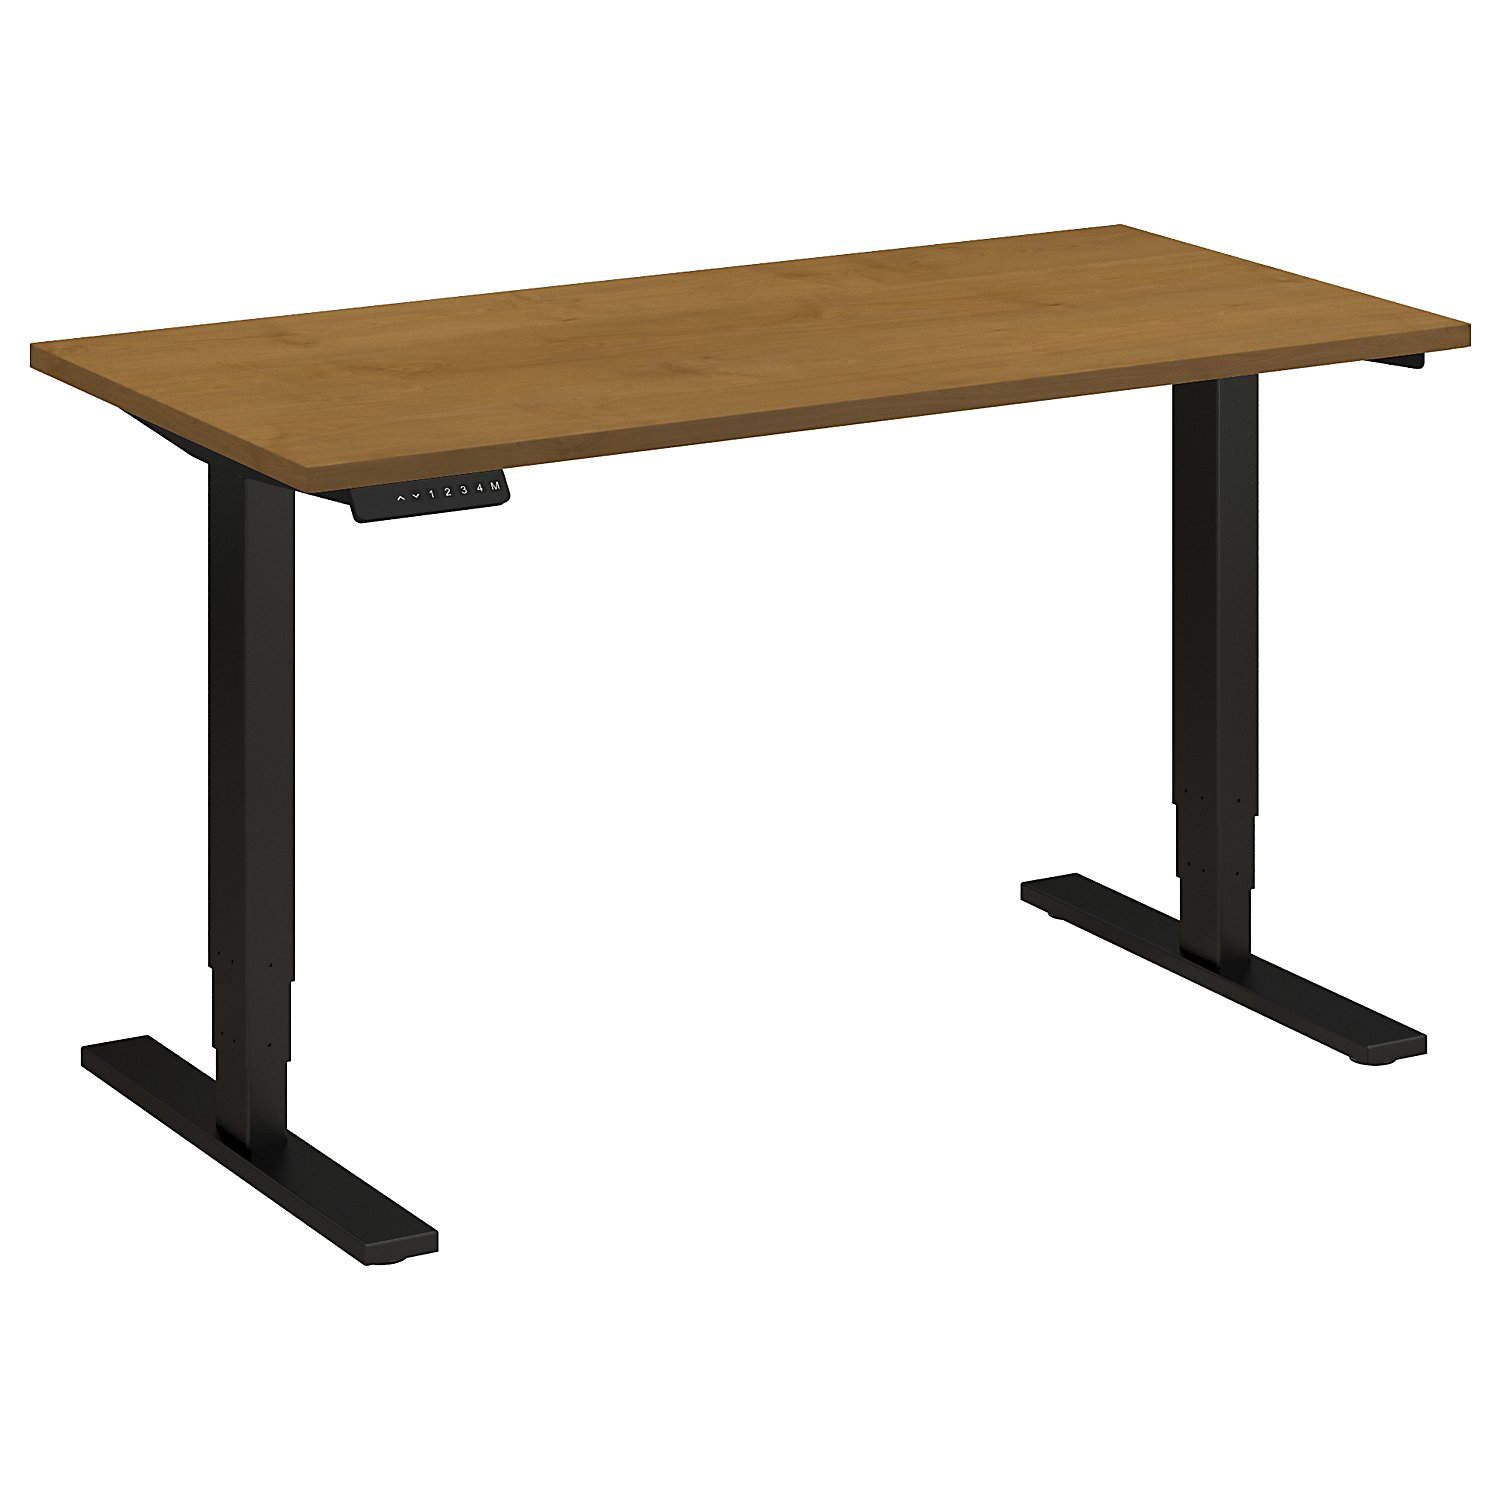 Adjustable Height Desks from BBF - Shown in Natural Cherry woodgrain laminate top and black base